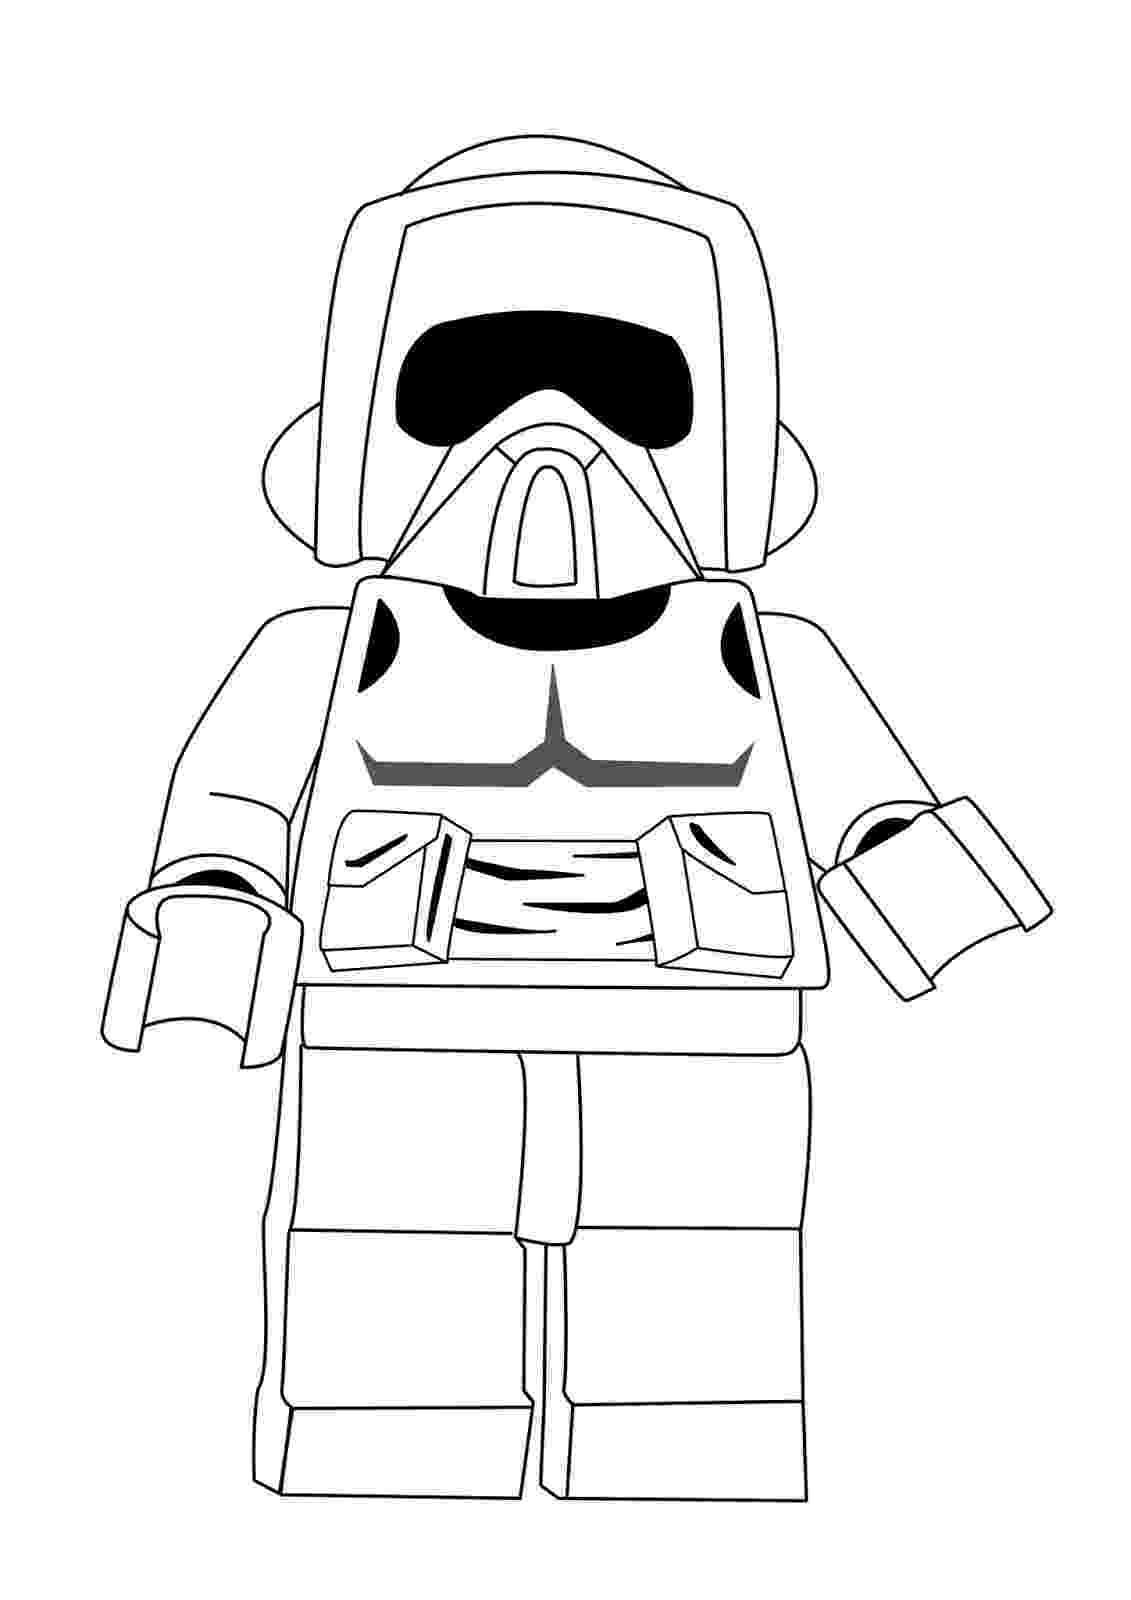 lego star wars color pages lego star wars coloring pages best coloring pages for kids lego wars color pages star